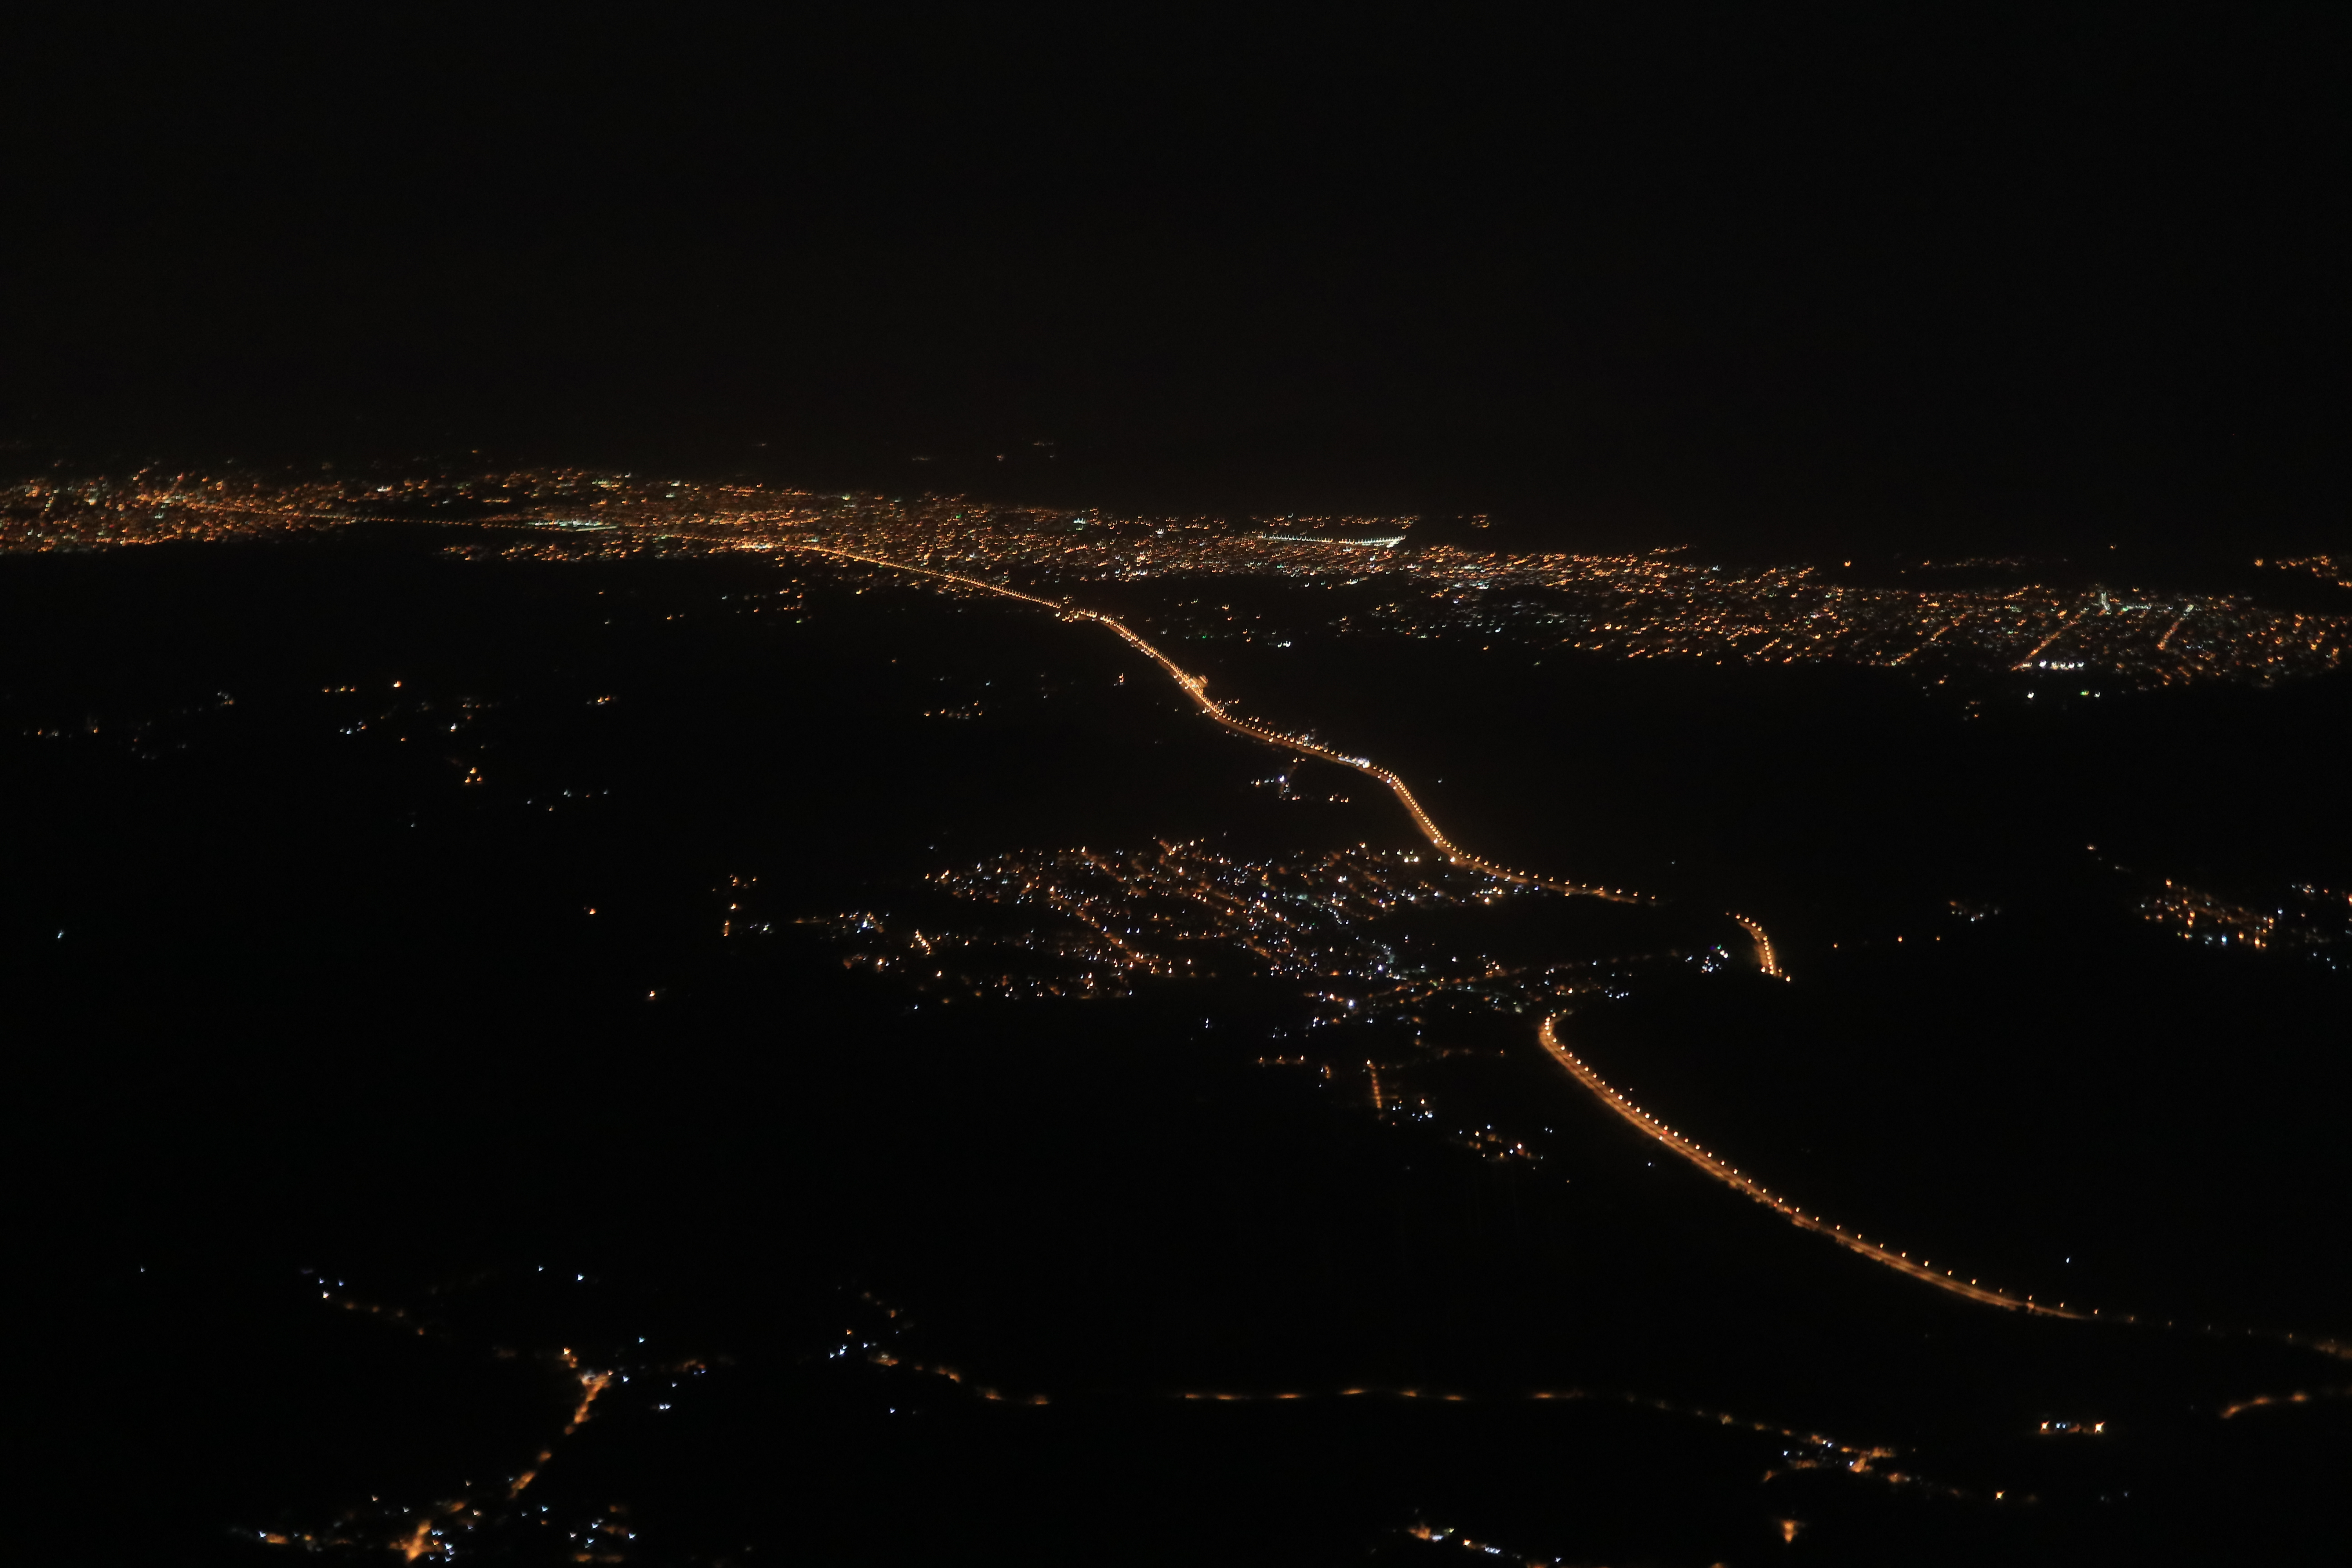 Rio de Janeiro from above at night